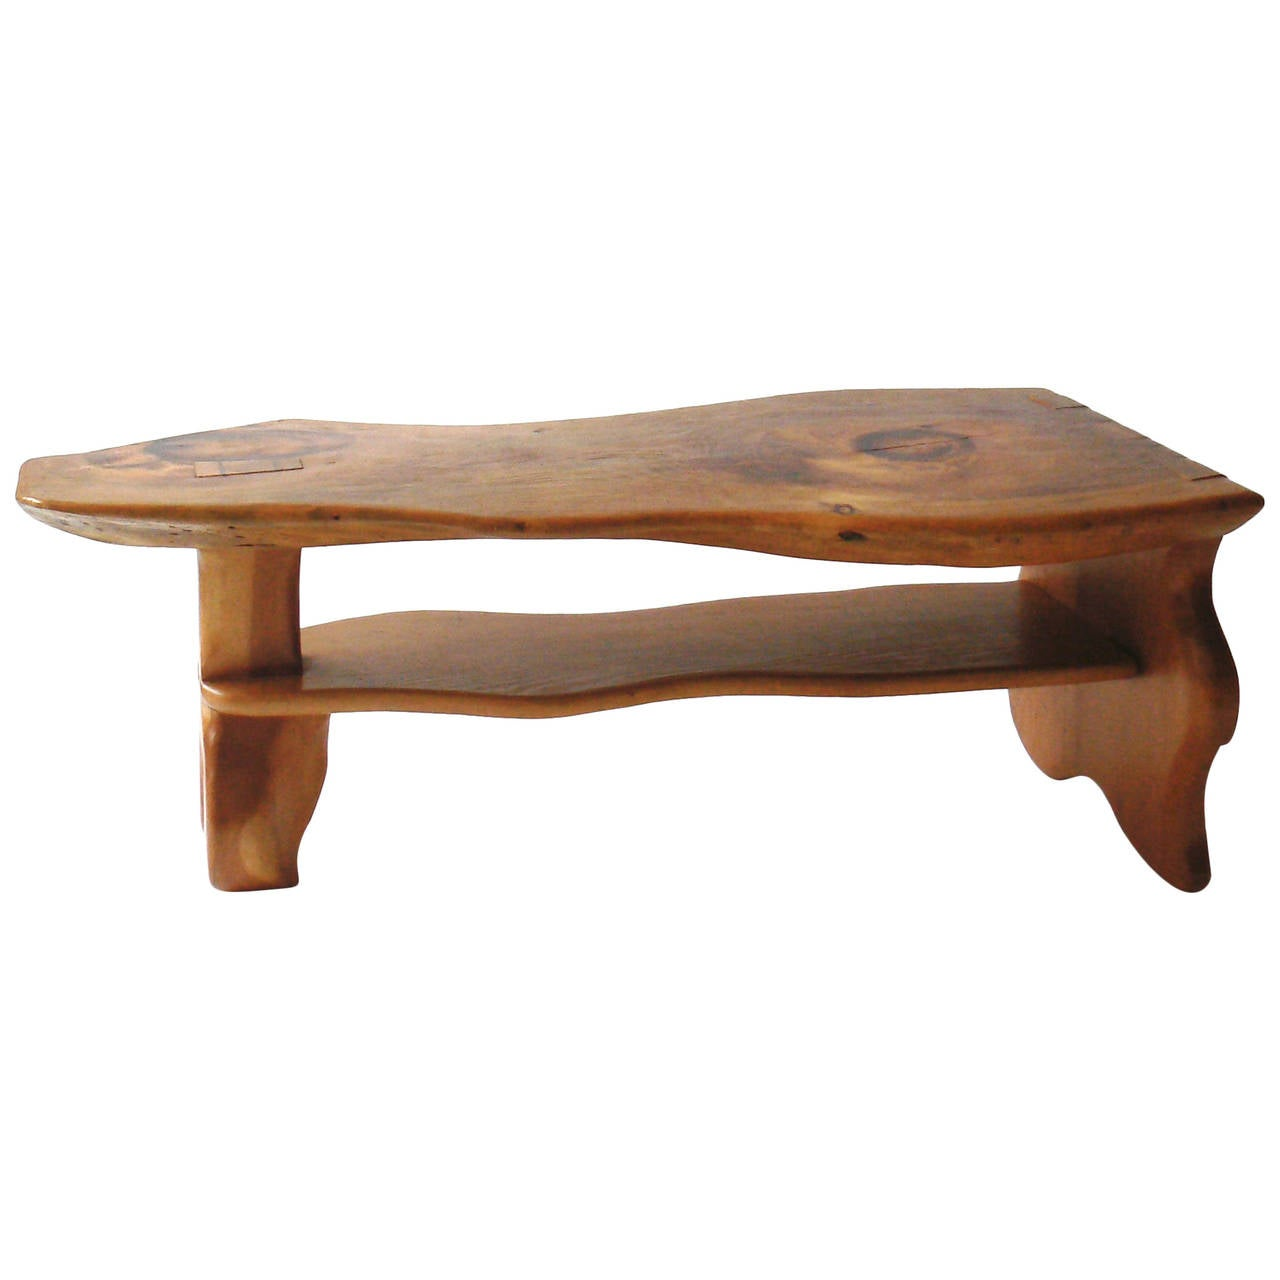 Carved live edge coffee table manner of alexandre noll for sale at 1stdibs Bench coffee tables